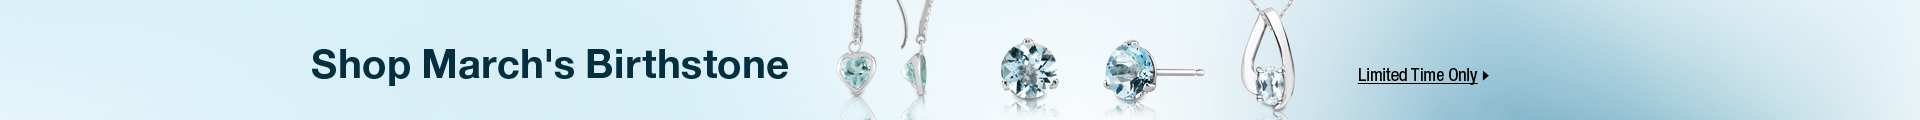 Shop March's birthstone